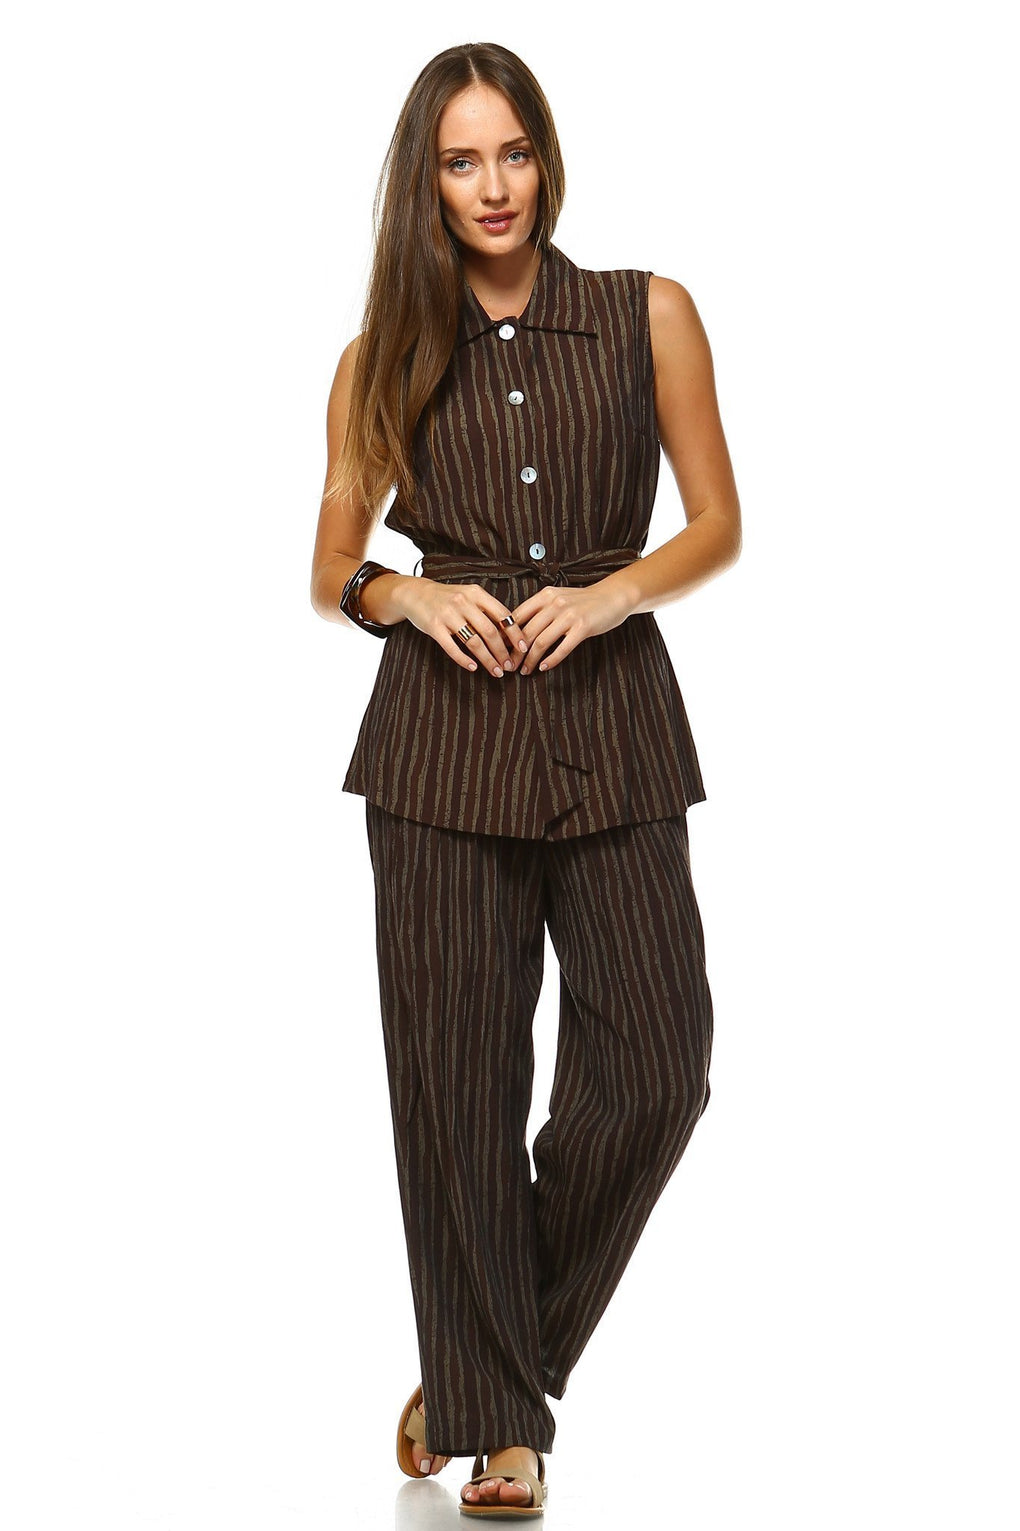 Women's Workwear 2 Piece Set - Danish Fashion & Living Online Store SALE